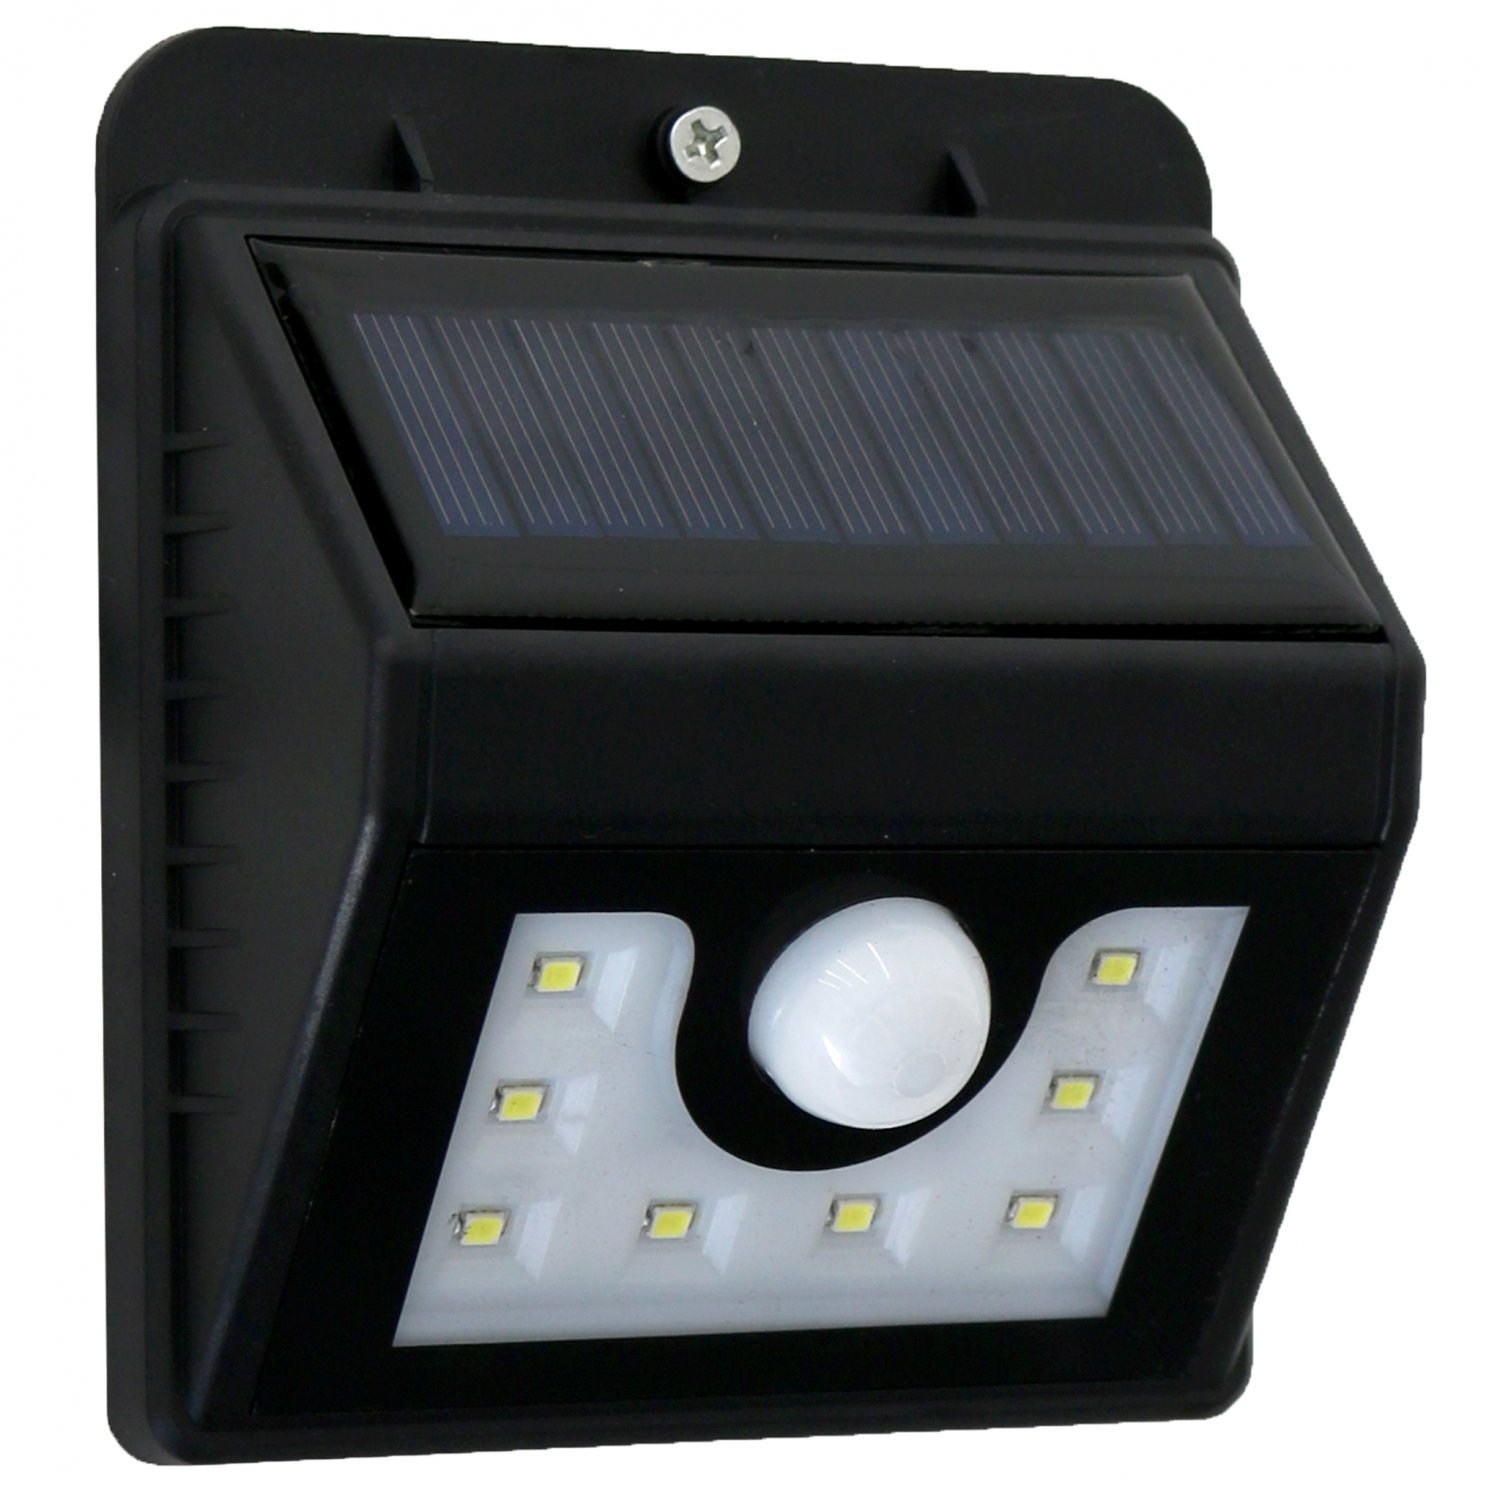 Waterproof Wall Mounted Outdoor Solar Motion Sensor LED Light